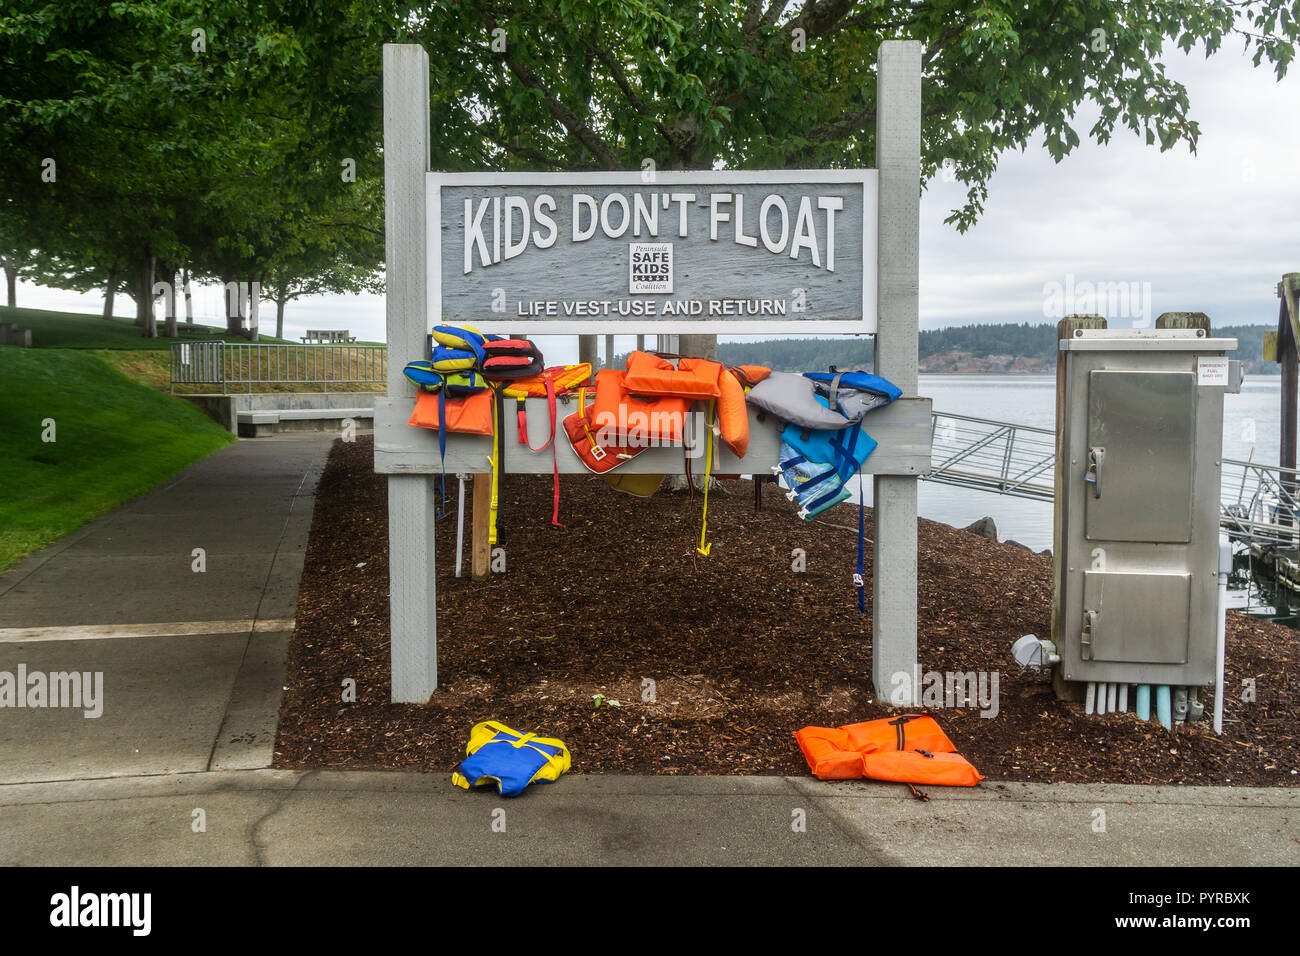 Life vest use and return self service at Sequim marina with the headline Kids don't float, Washington state, USA. - Stock Image